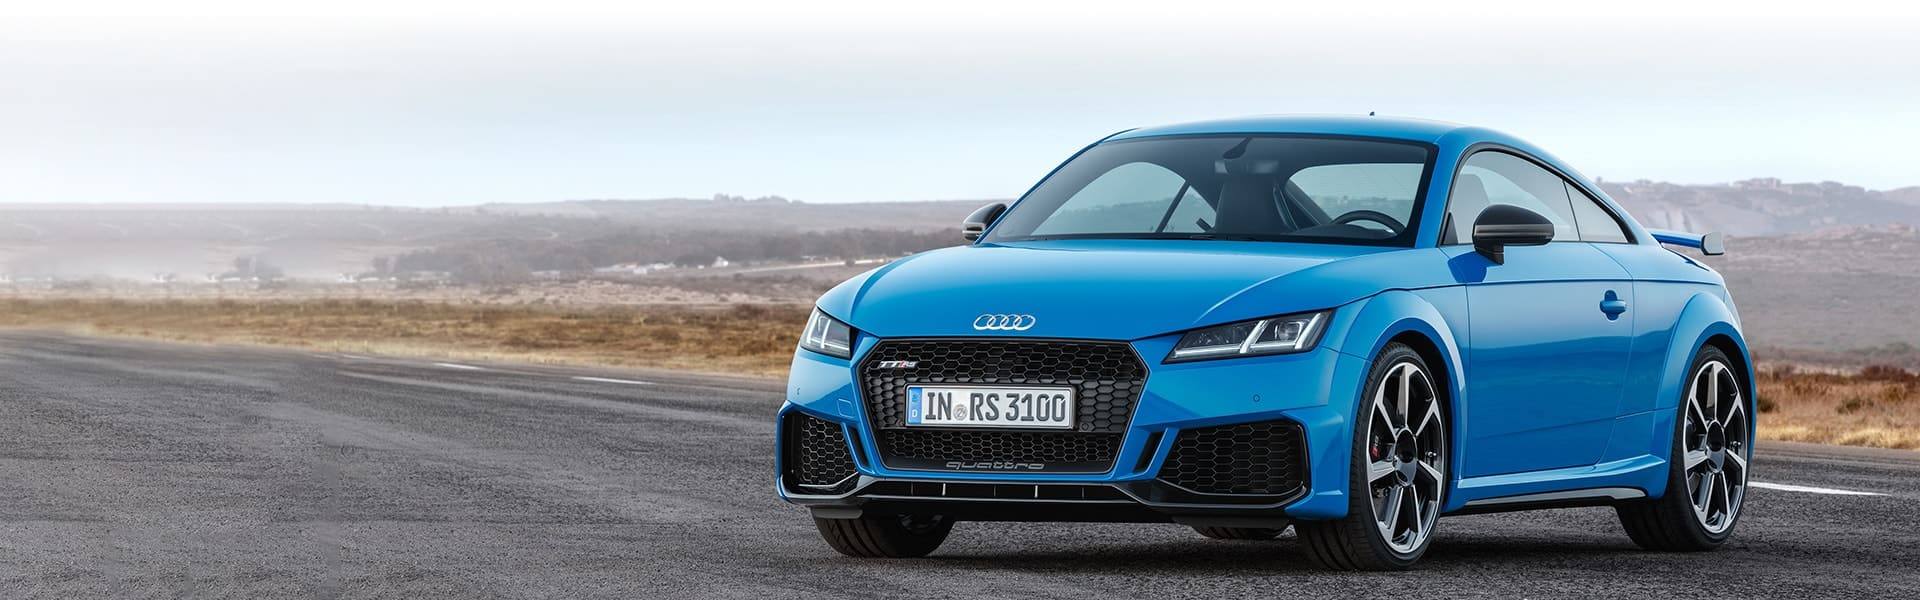 The 2019 TT RS Coupé